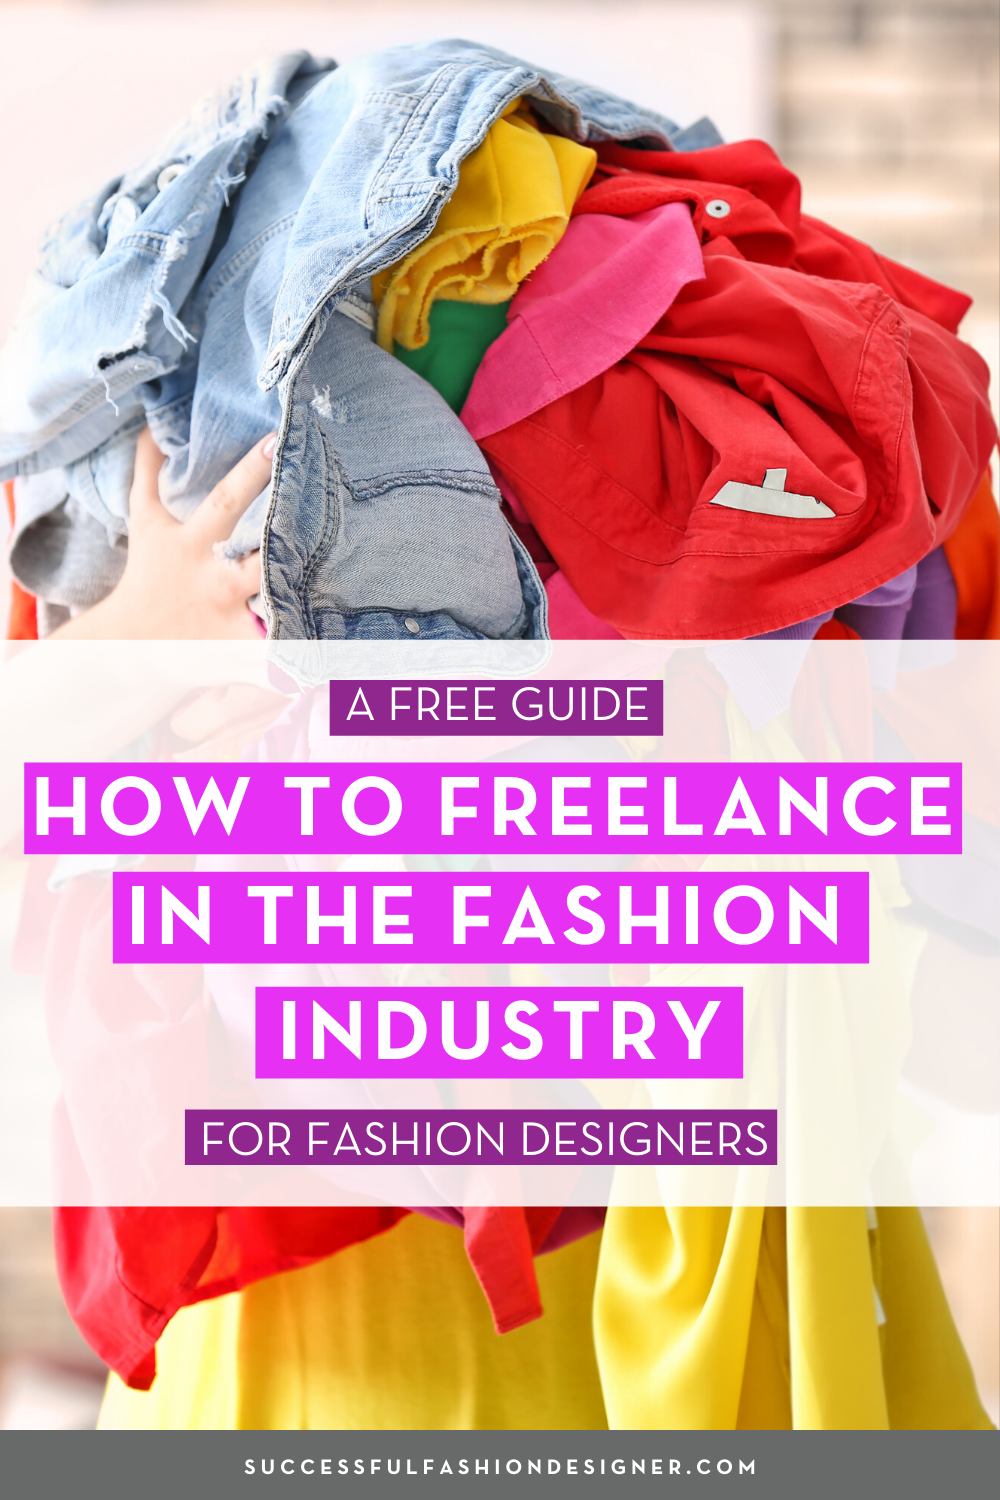 How To Be A Freelance Fashion Designer The Free Ultimate Guide In 2020 Career In Fashion Designing Fashion Design Jobs Fashion Design Portfolio